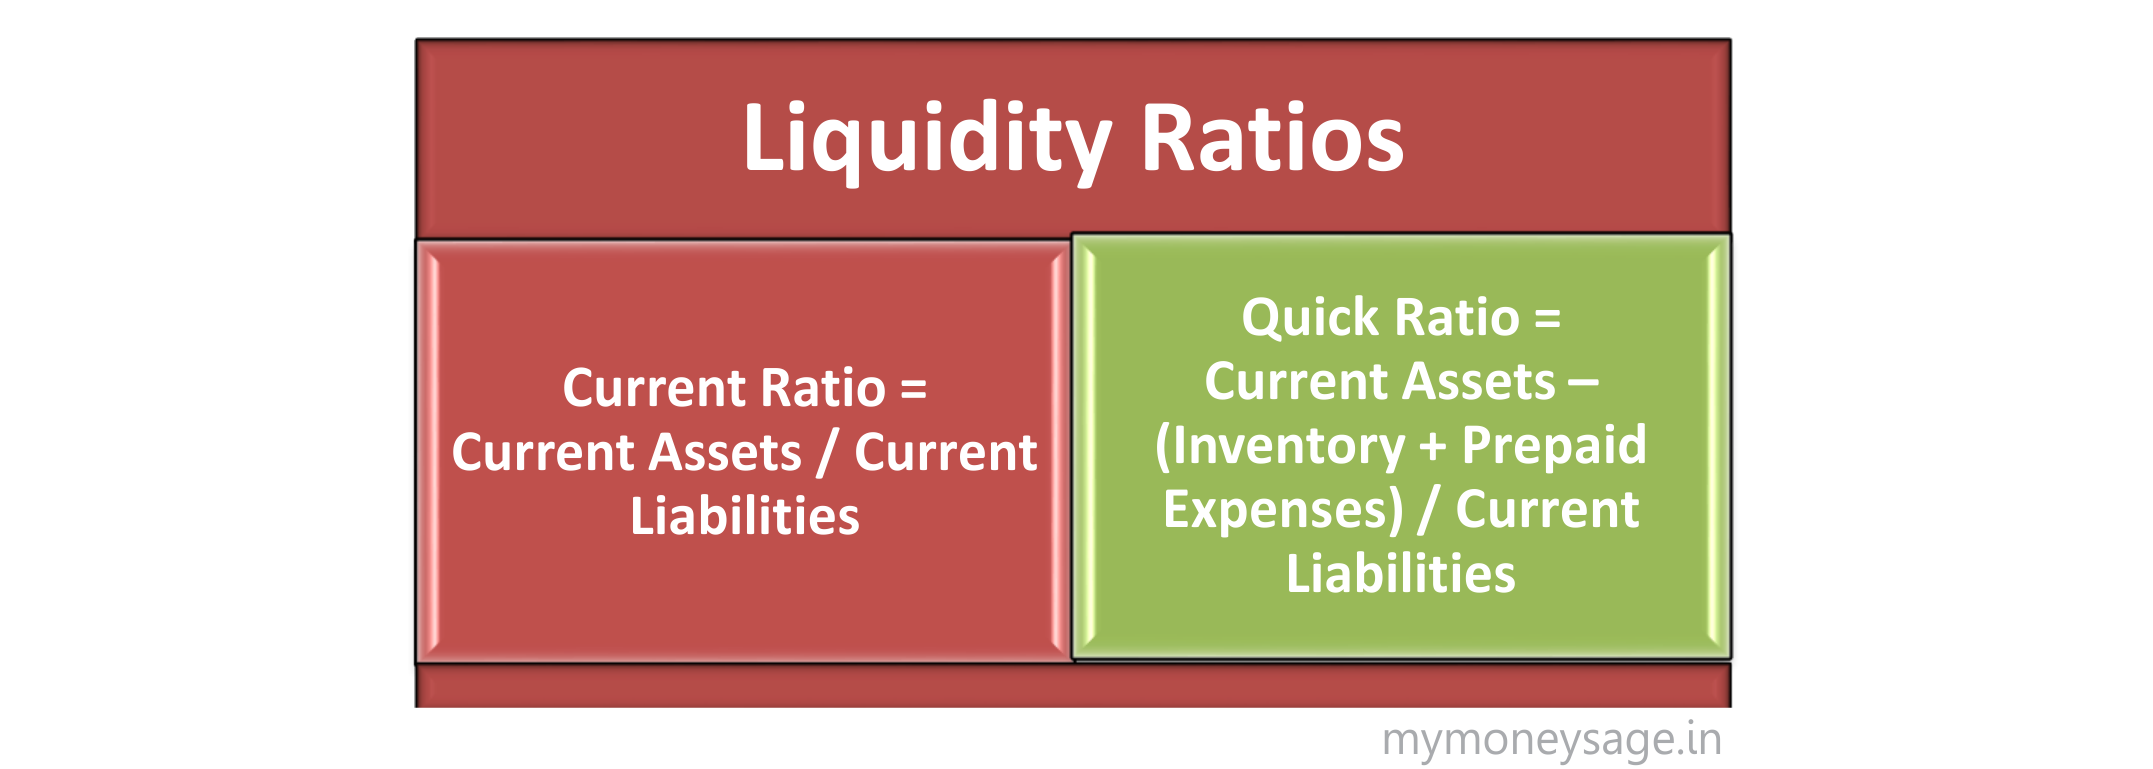 efficiency ratios Efficiency ratios also called activity ratios measure how well companies utilize their assets to generate income.